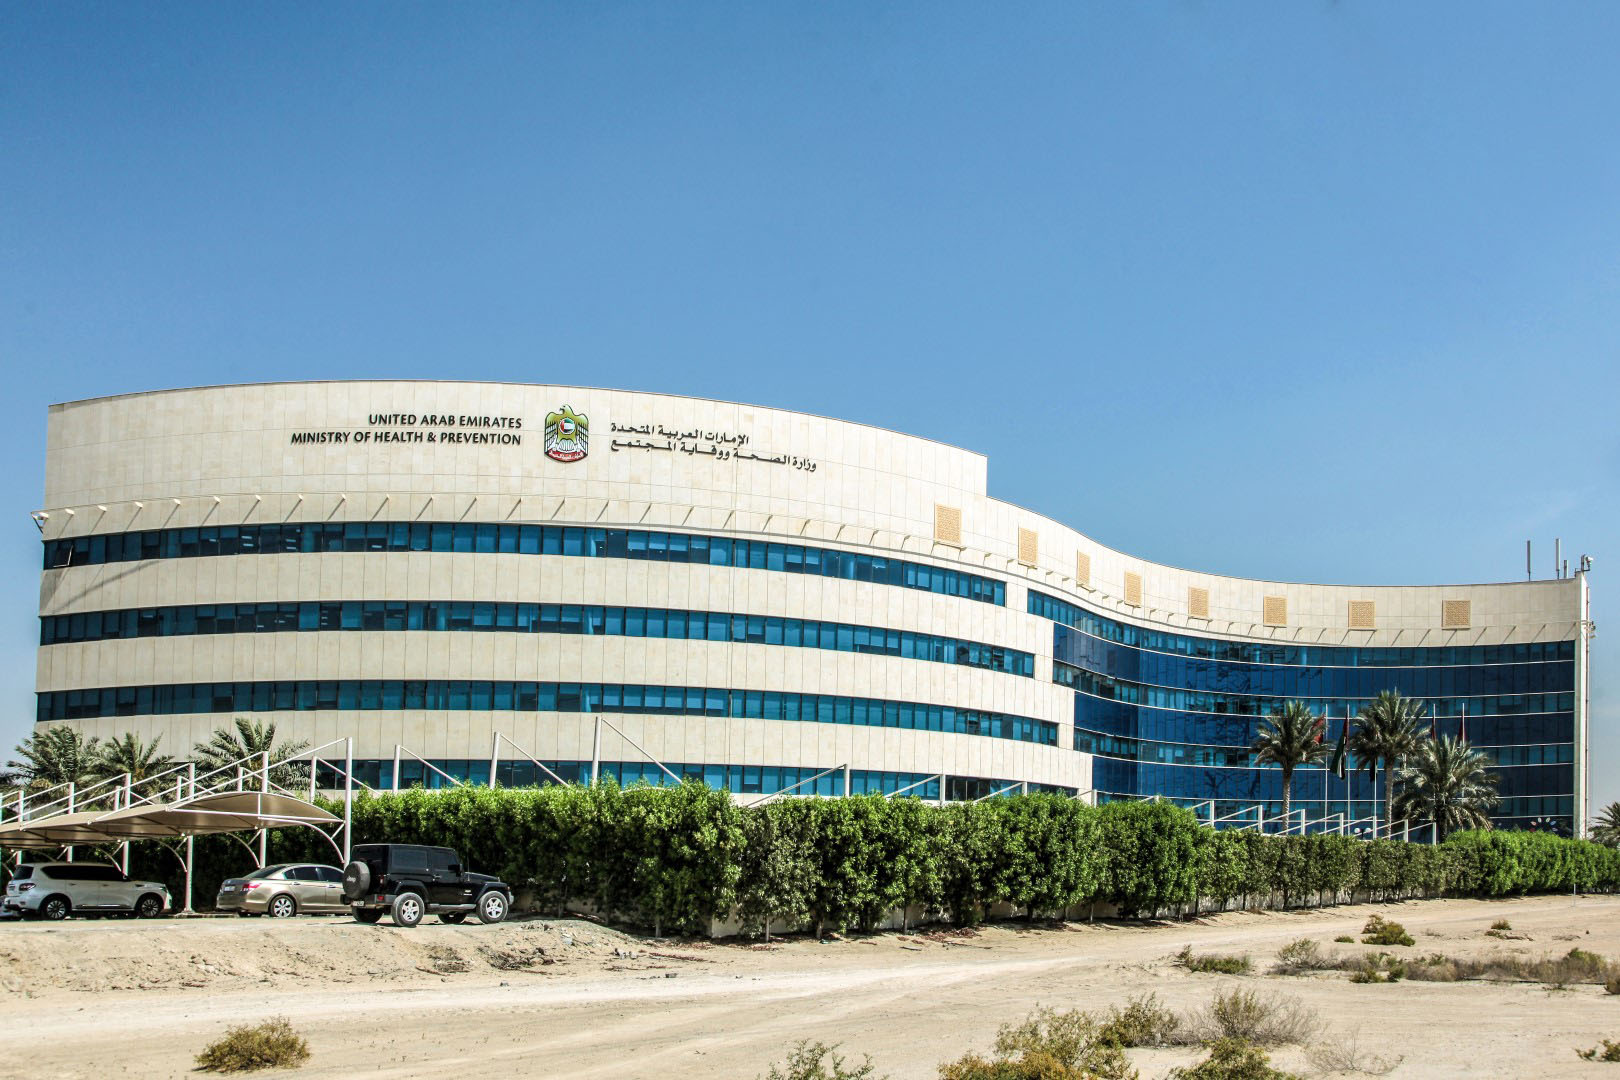 An innovative lung cancer drug given fast track approval by UAE Ministry of Health